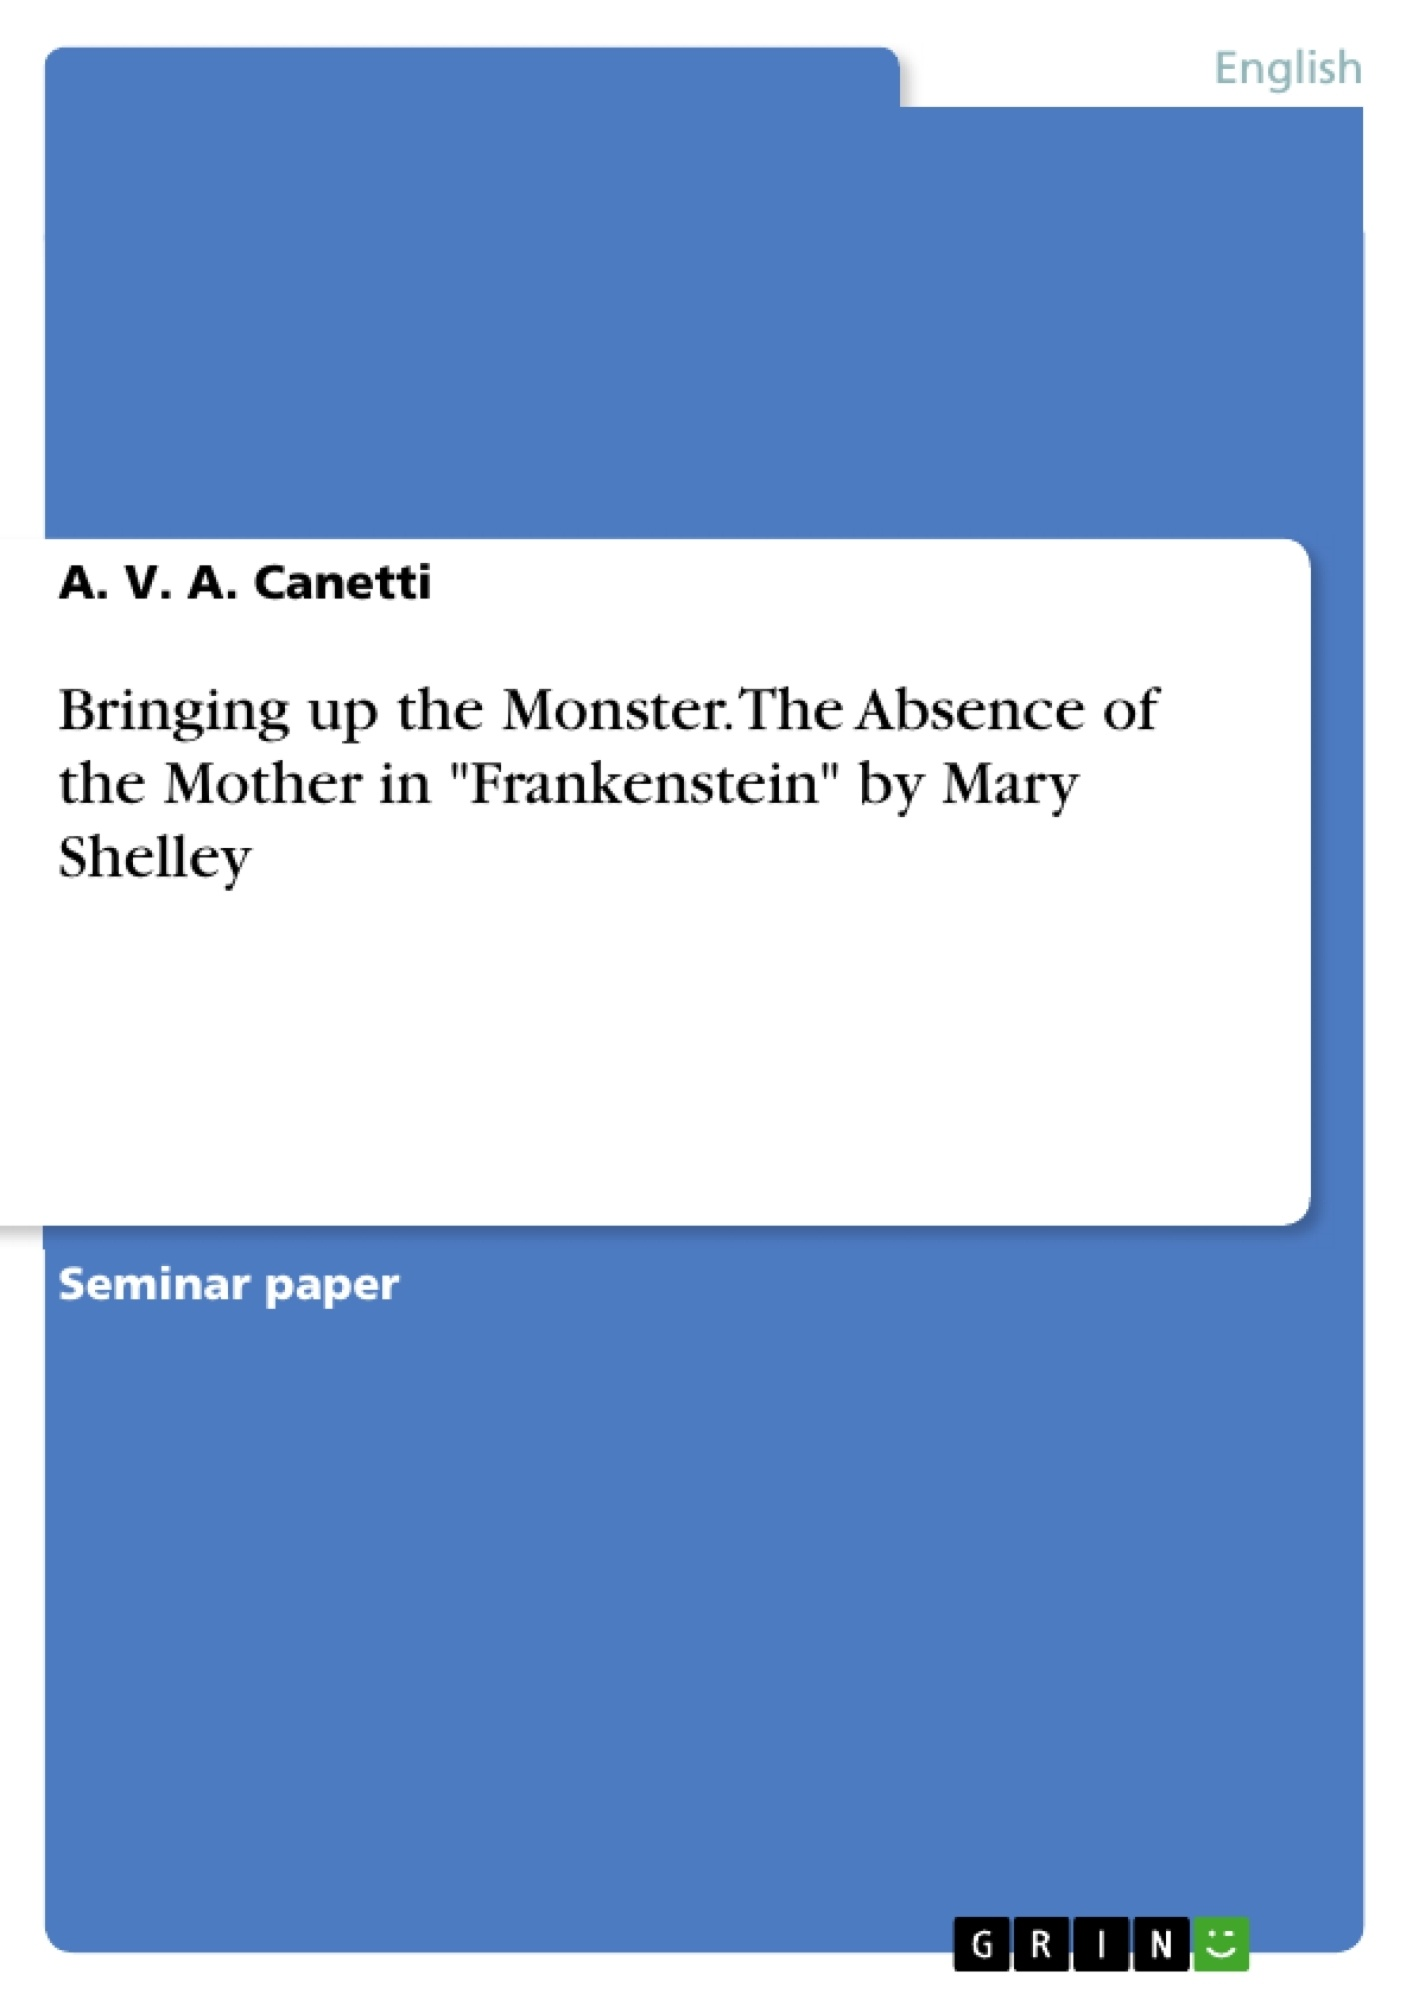 """Title: Bringing up the Monster. The Absence of the Mother in """"Frankenstein"""" by Mary Shelley"""